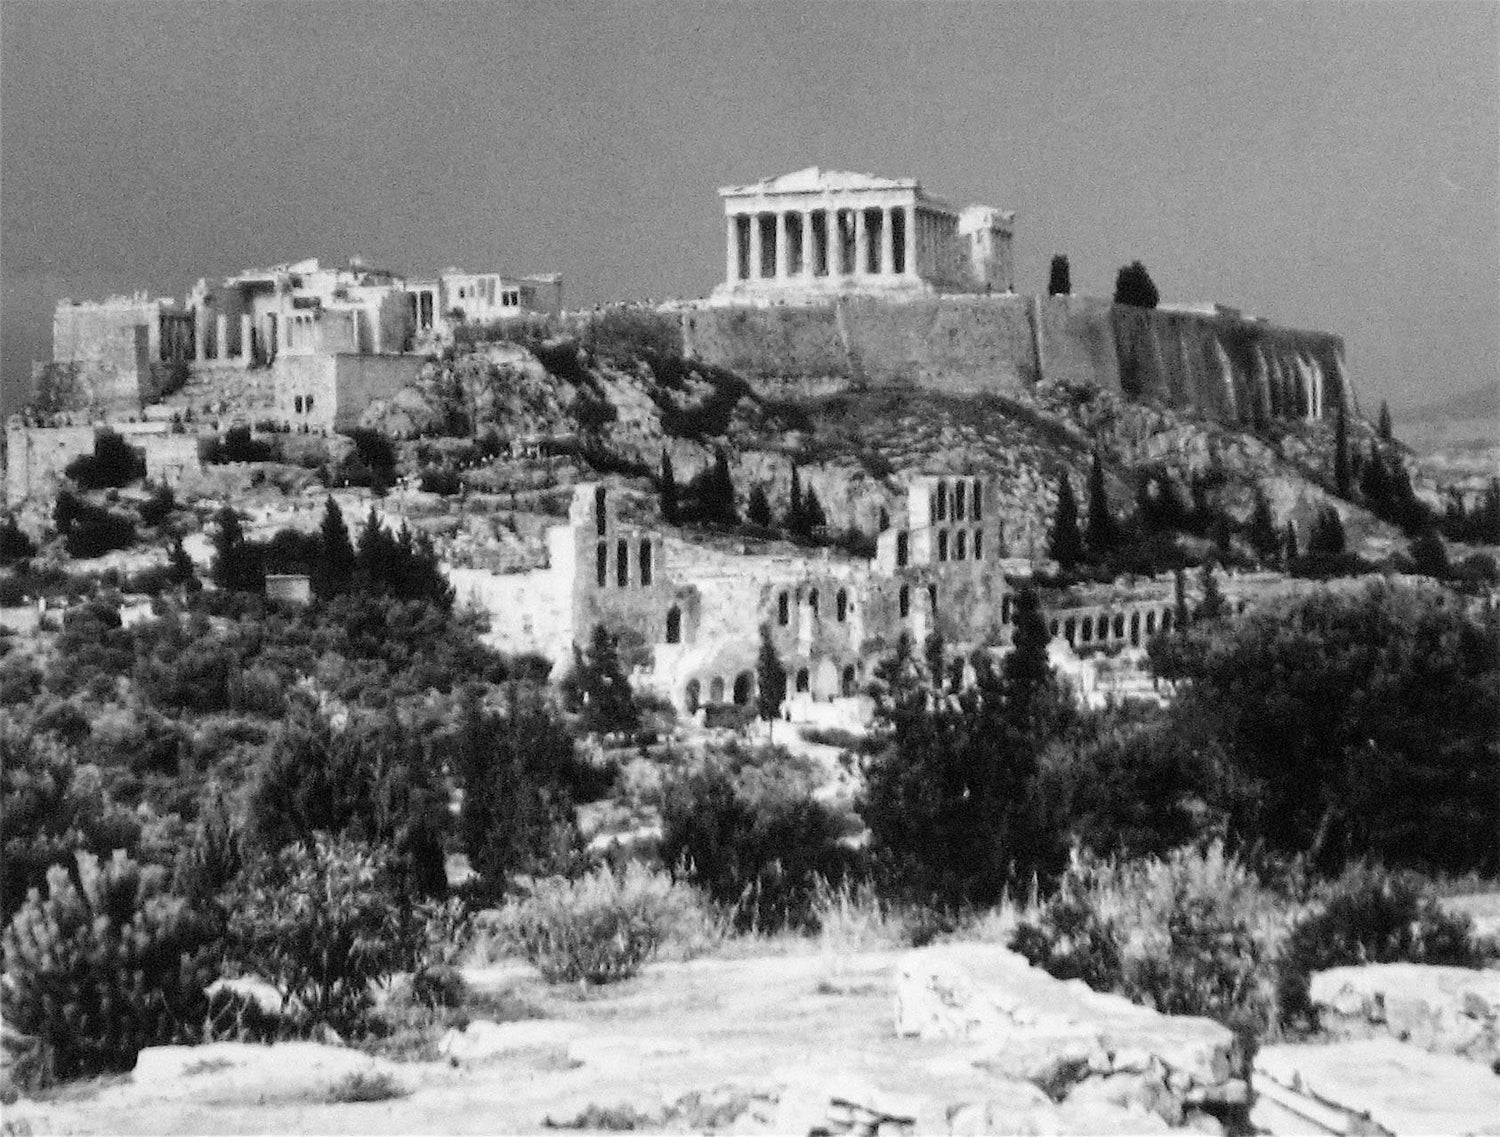 Roz joseph greek hillside with ruins black and white photograph 1960s photograph for sale at 1stdibs